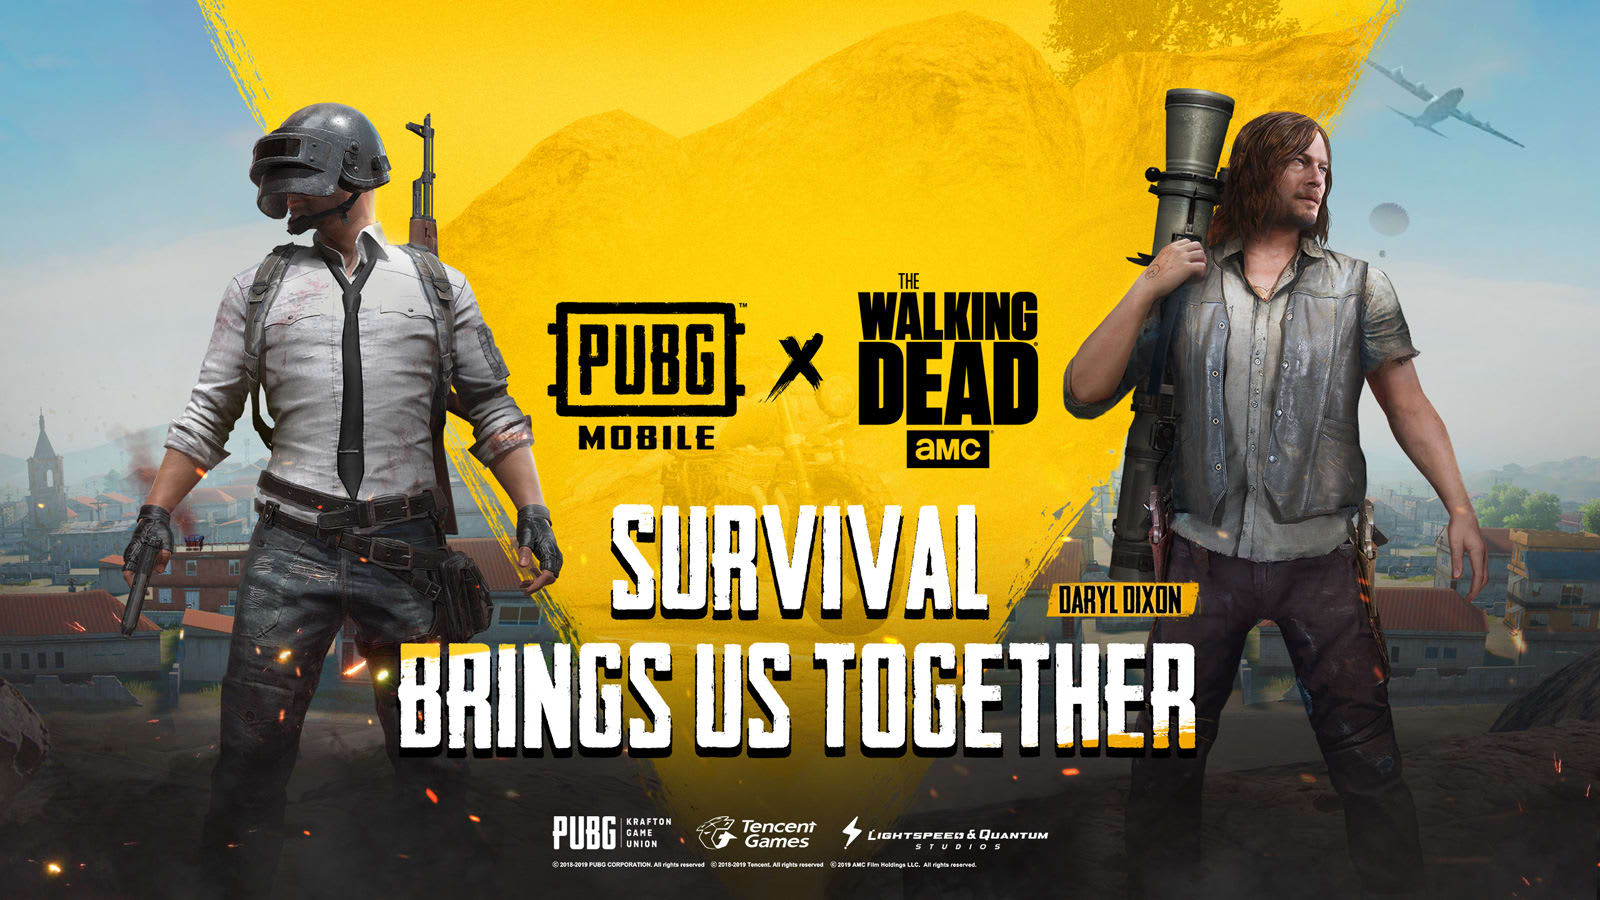 Pubg Mobile Will Add Characters And Gear From The Walking